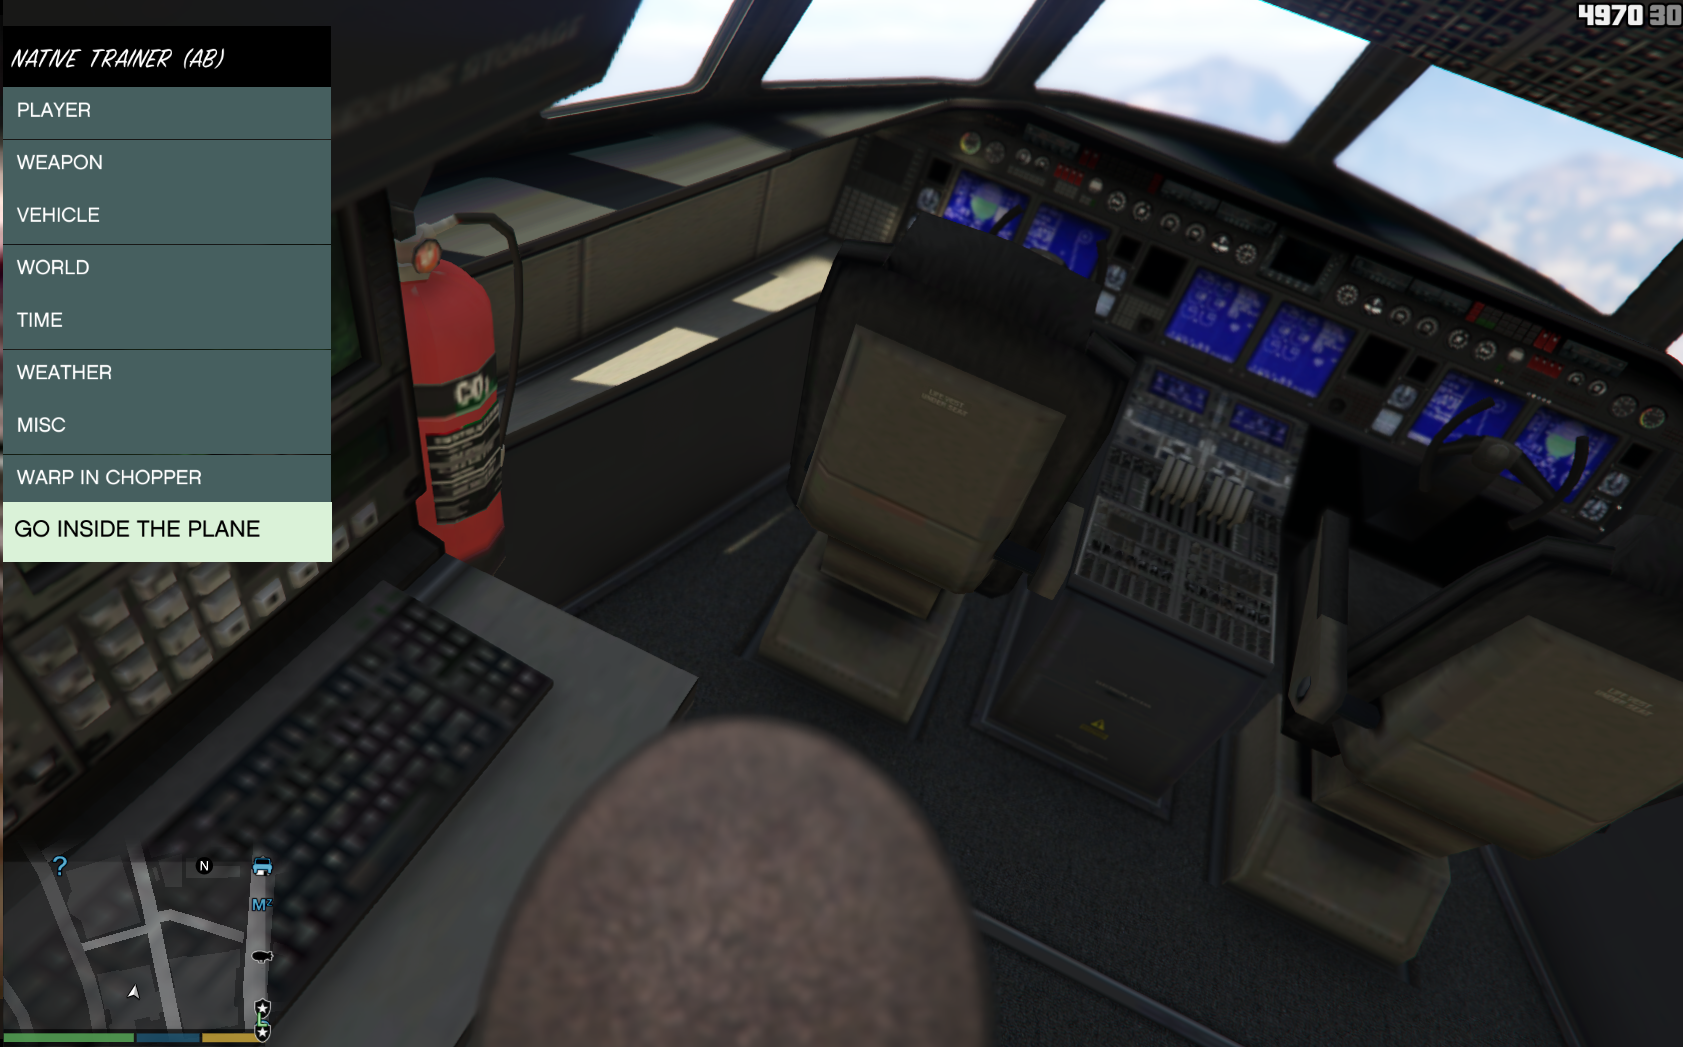 Autopilot: Walk around cargo plane while flying and drive out the